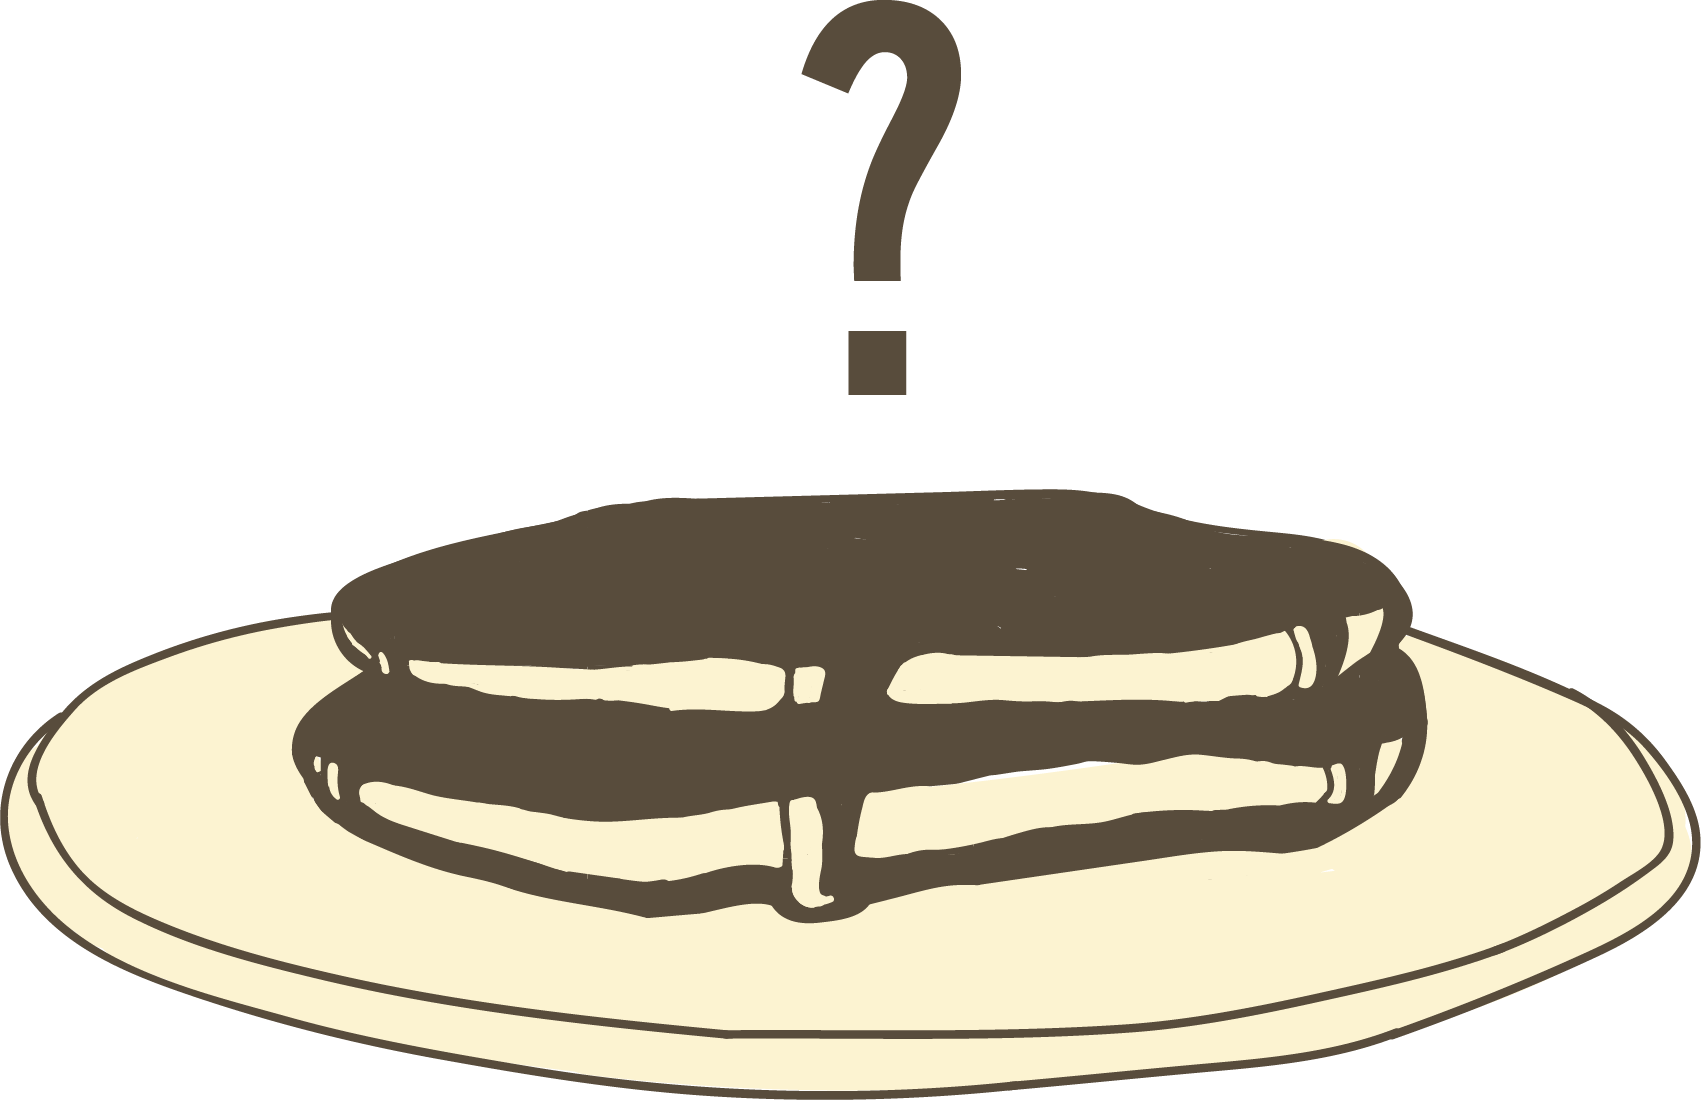 Pancake clipart full stack. Rewards the parlour every